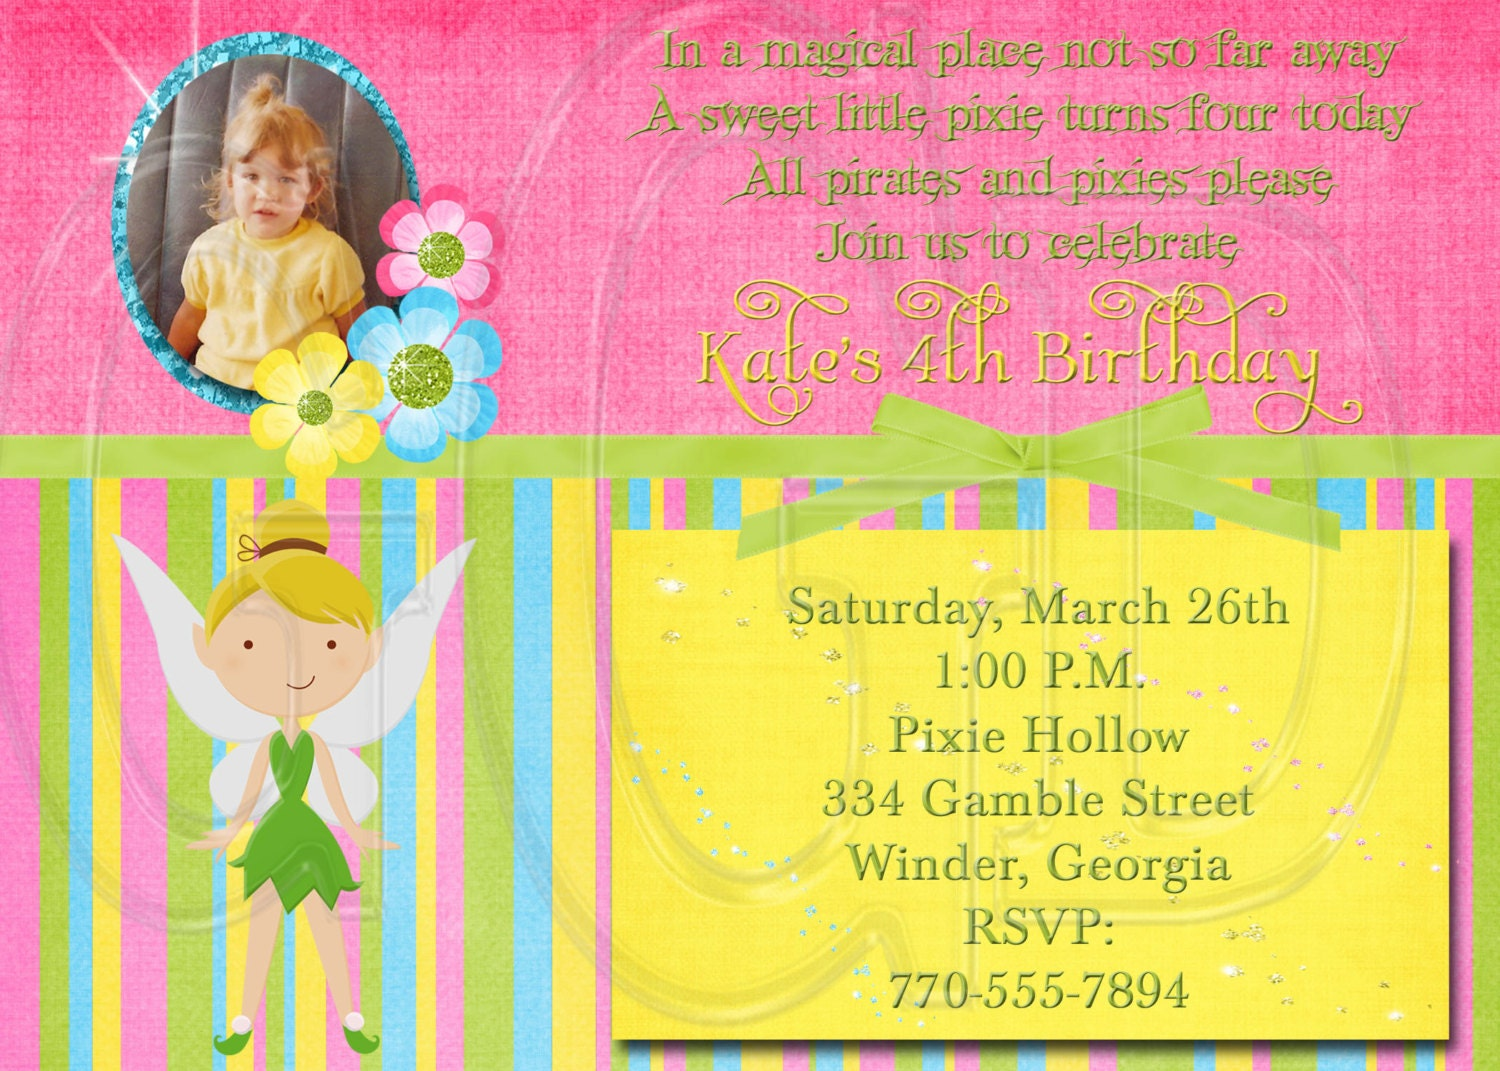 tinkerbell invitation birthday party invitation digital file 128270zoom